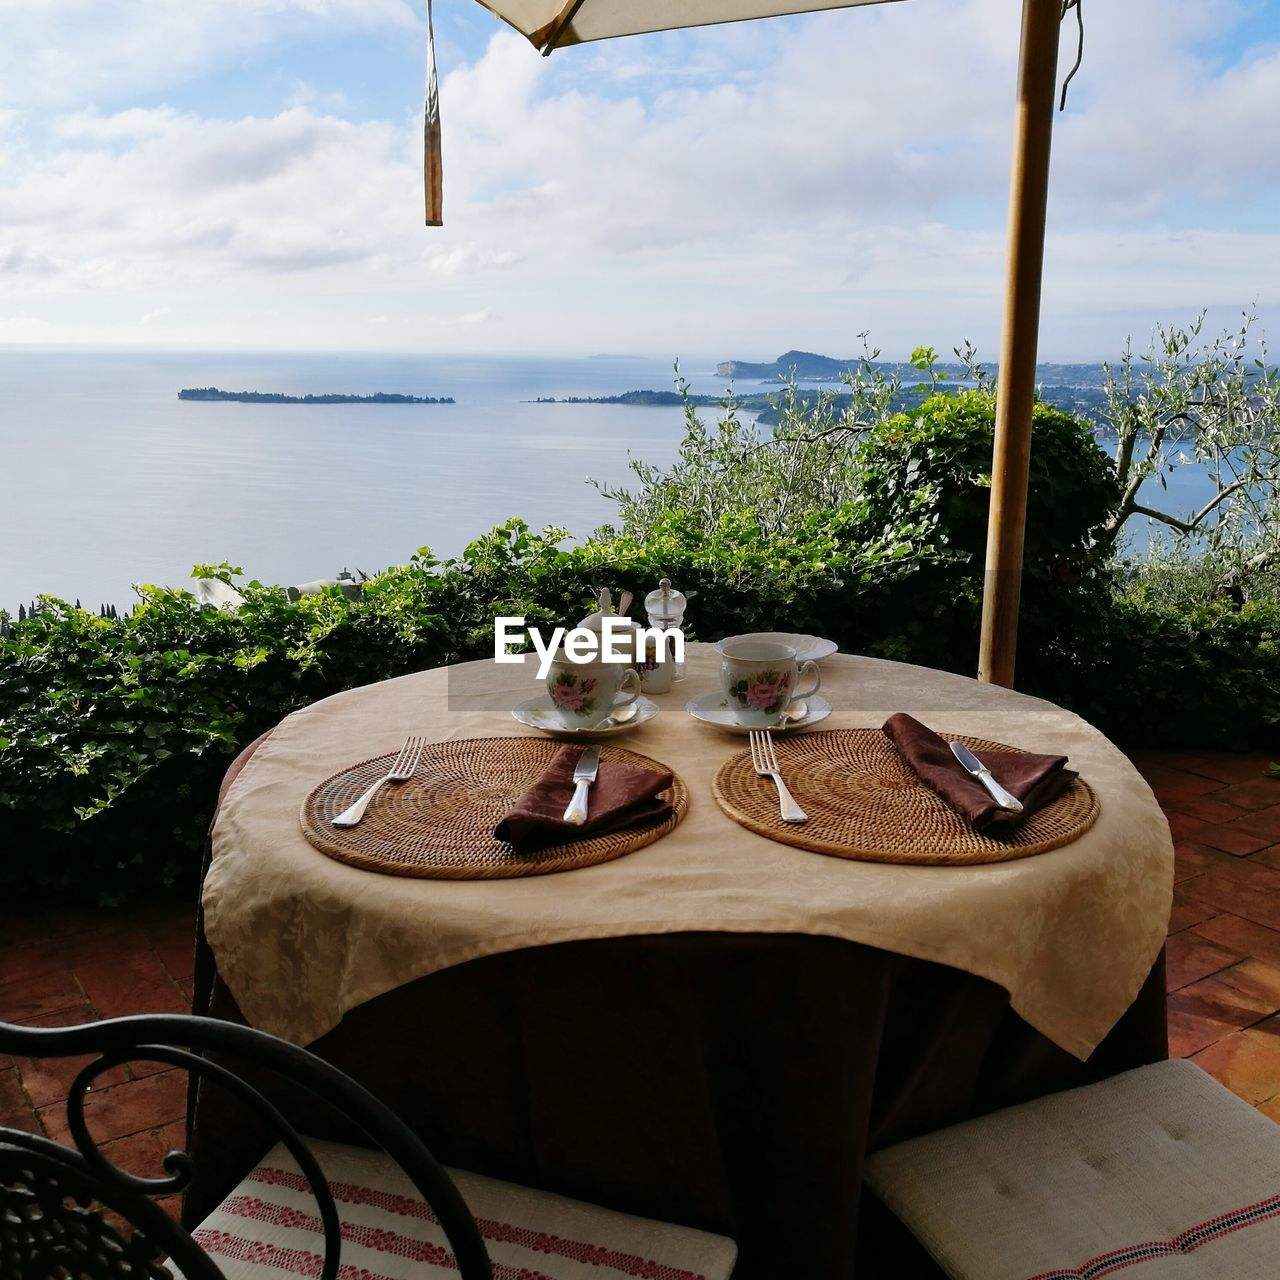 table, sky, food and drink, cloud - sky, day, sea, no people, chair, nature, water, food, place setting, outdoors, tree, scenics, plate, drink, luxury, beauty in nature, horizon over water, freshness, close-up